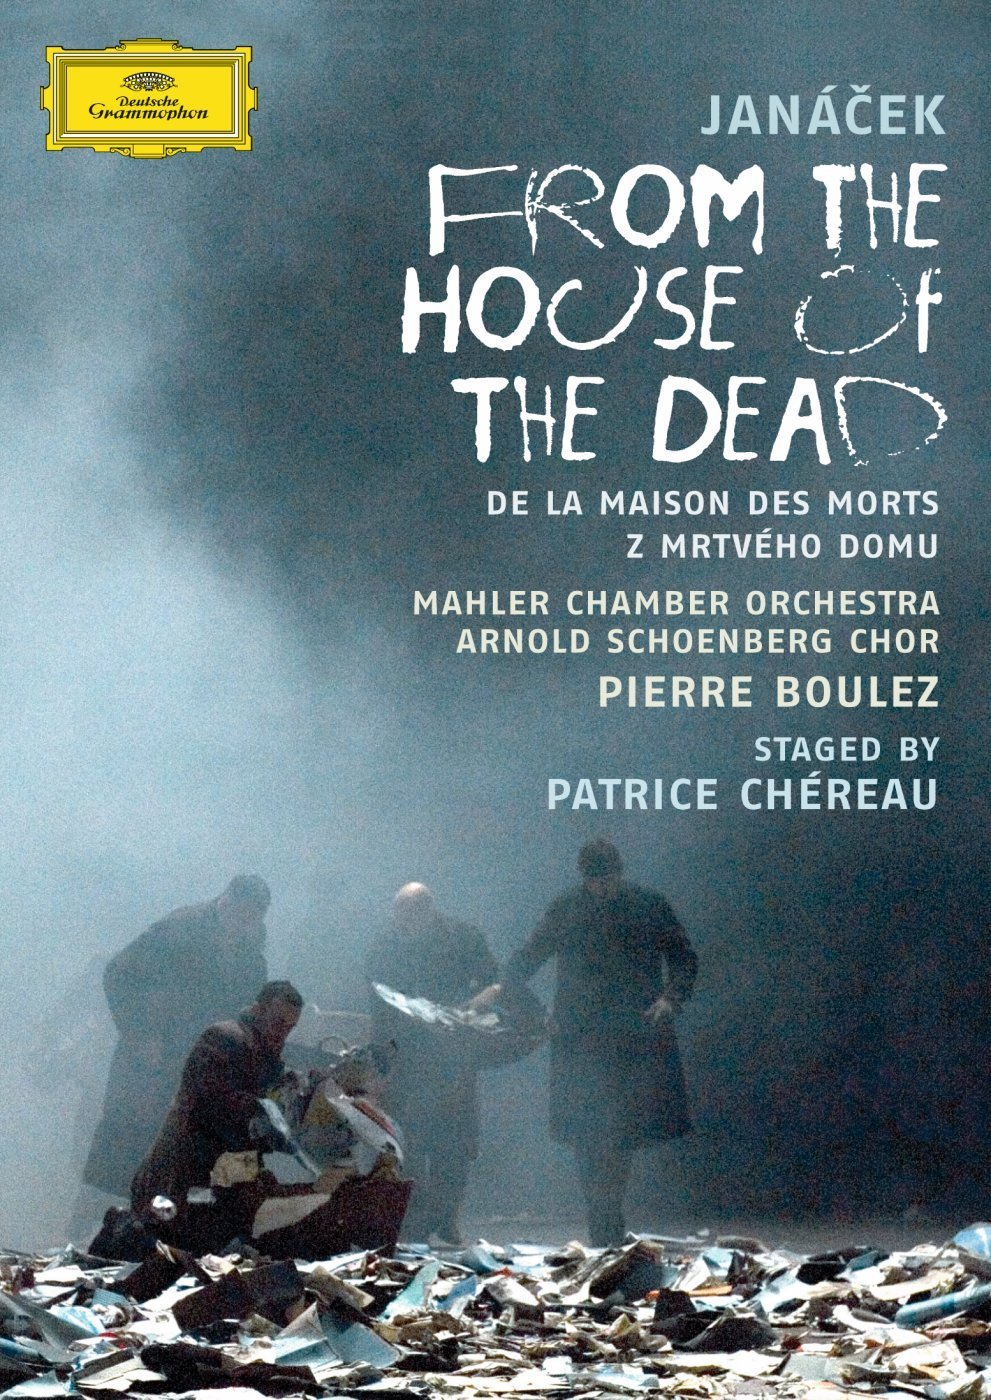 DVD : Pierre Boulez - From The House Of The Dead (DVD)